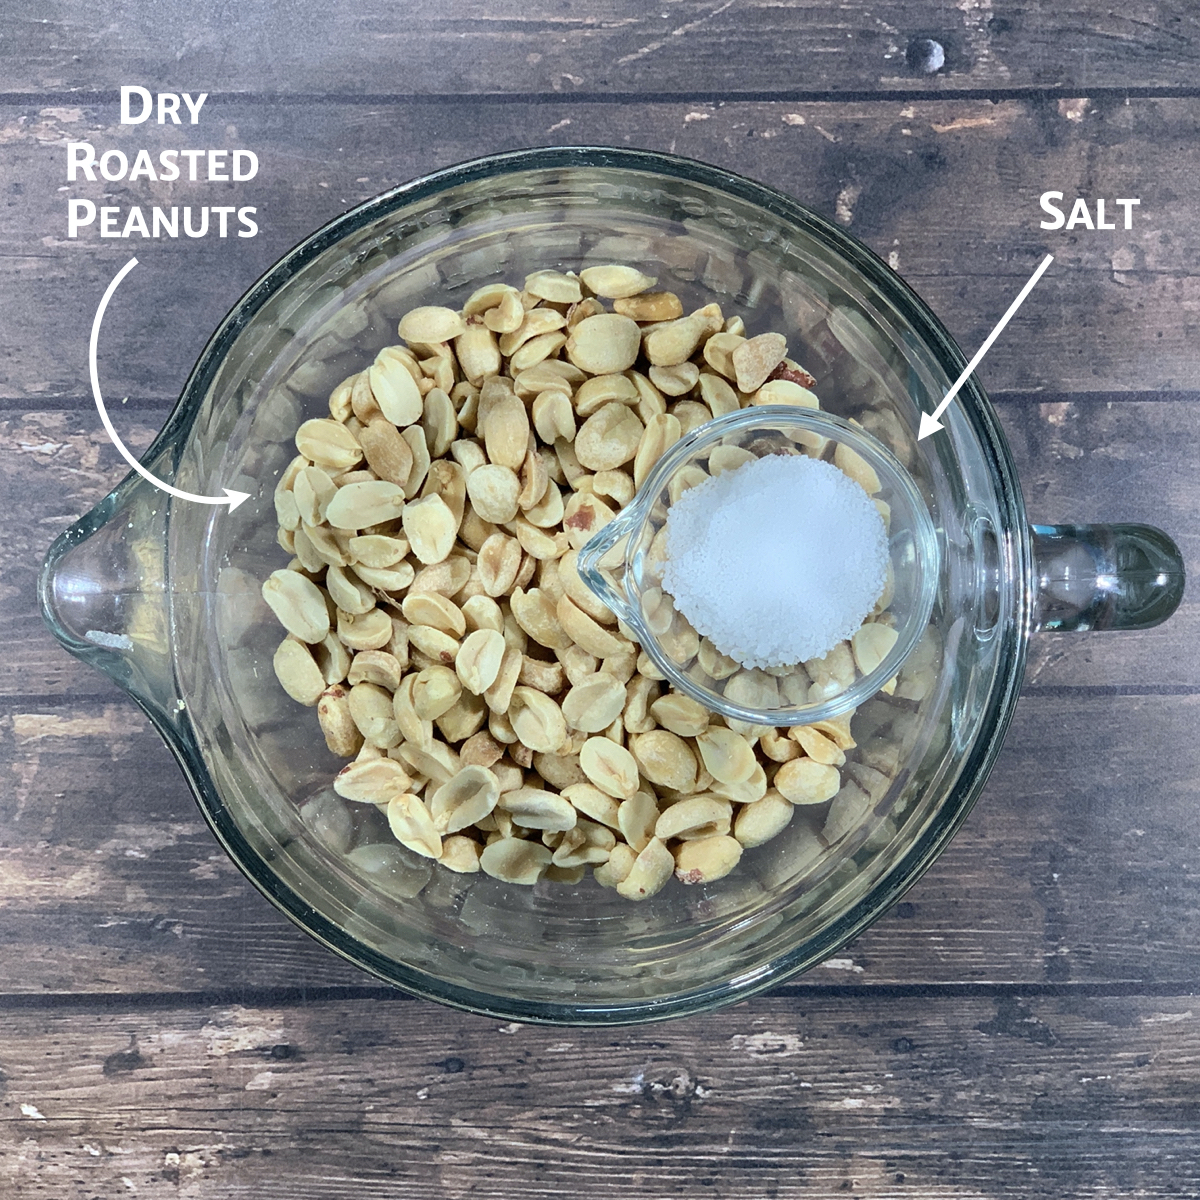 Homemade old-fashioned peanut butter ingredients